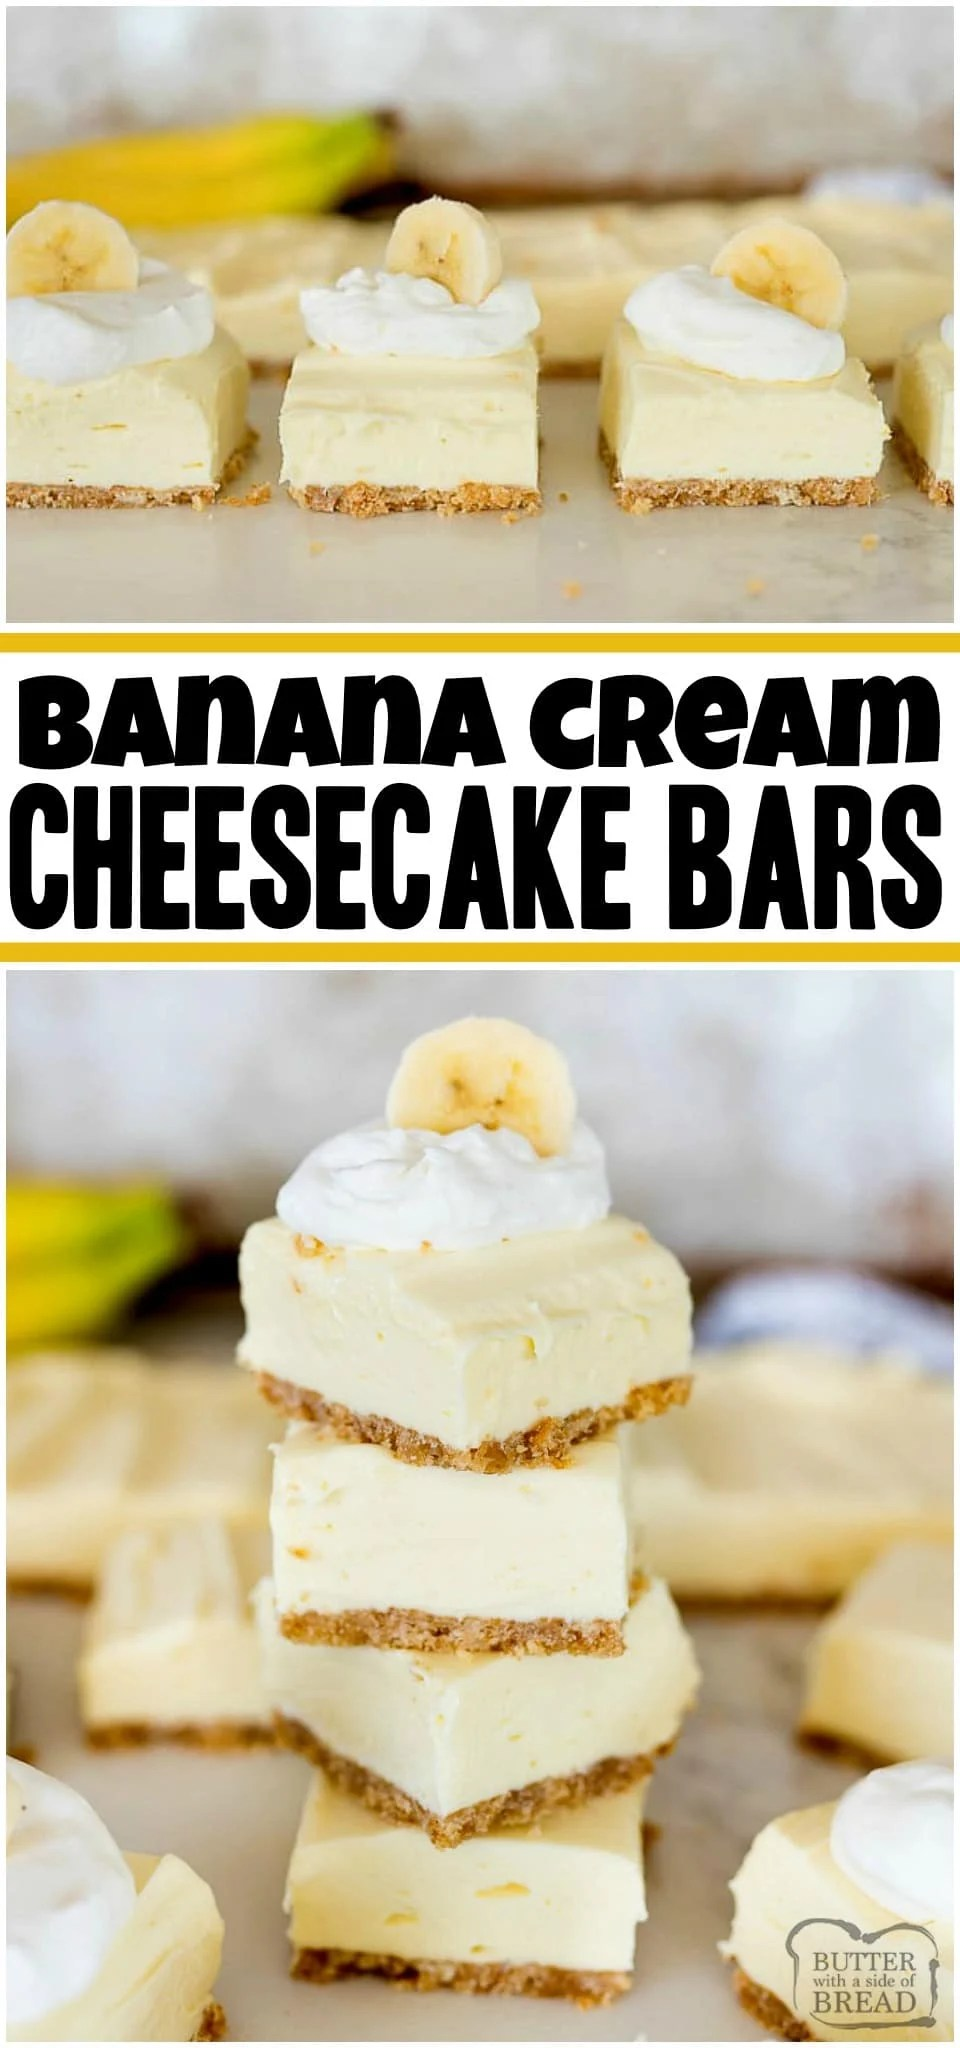 Banana Cream Cheesecake Bars is a simple, no bake cheesecake recipe with incredible banana flavor! Easy banana cheesecake recipe that everyone loves! #cheesecake #nobake #dessert #banana #bananacream #bananacheesecake #recipe from BUTTER WITH A SIDE OF BREAD